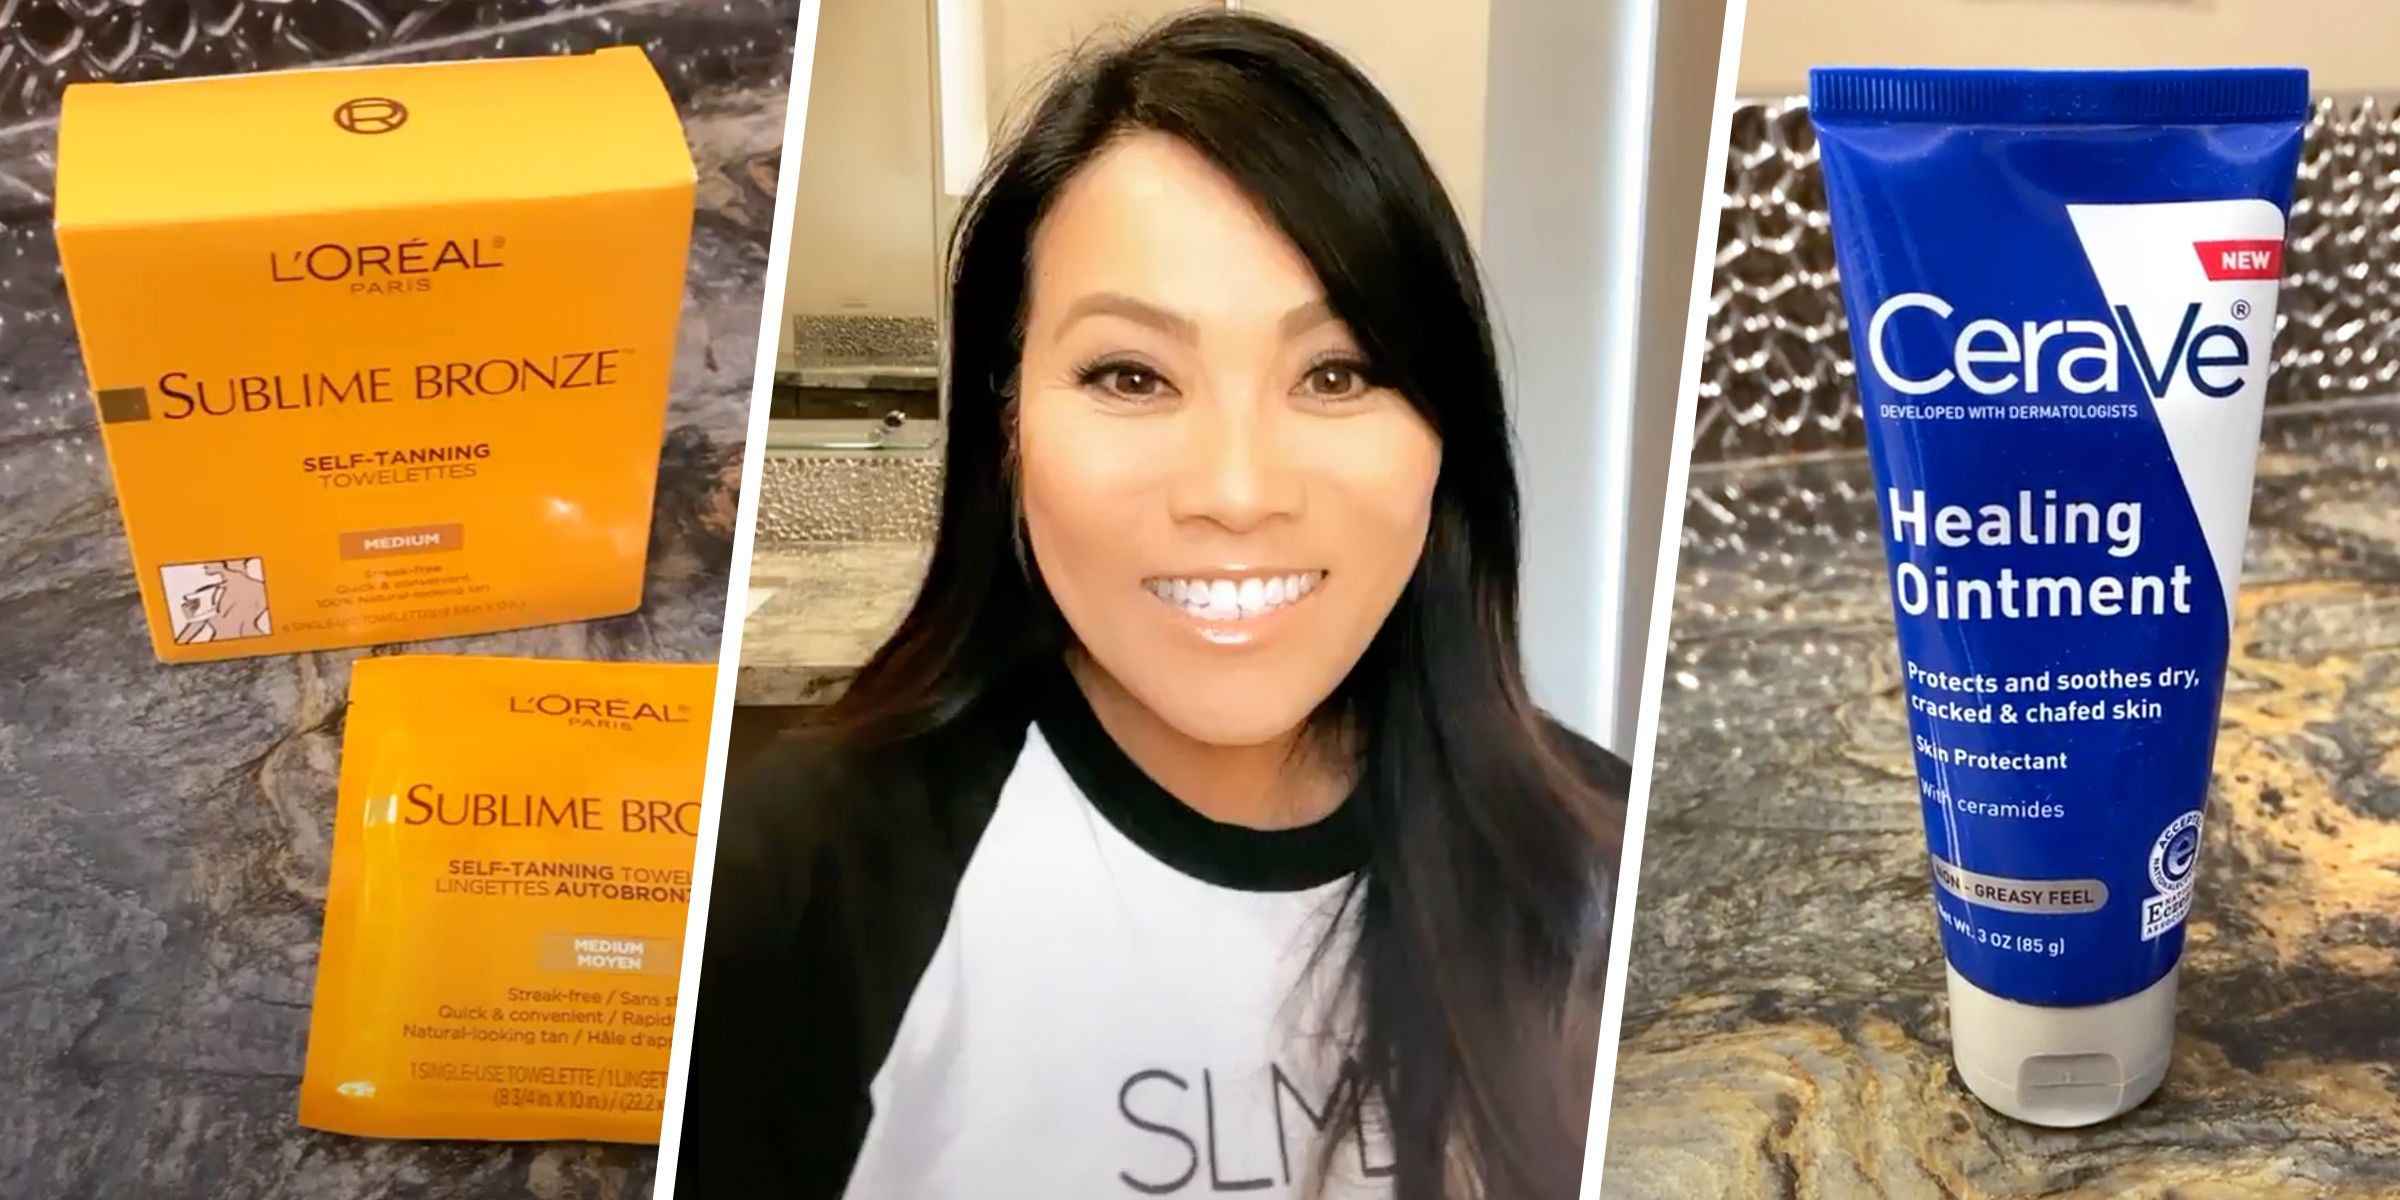 Dr Pimple Popper Revealed The Affordable Skin Care Products She Swears By Skin Care Affordable Skin Care Celebrity Skin Care